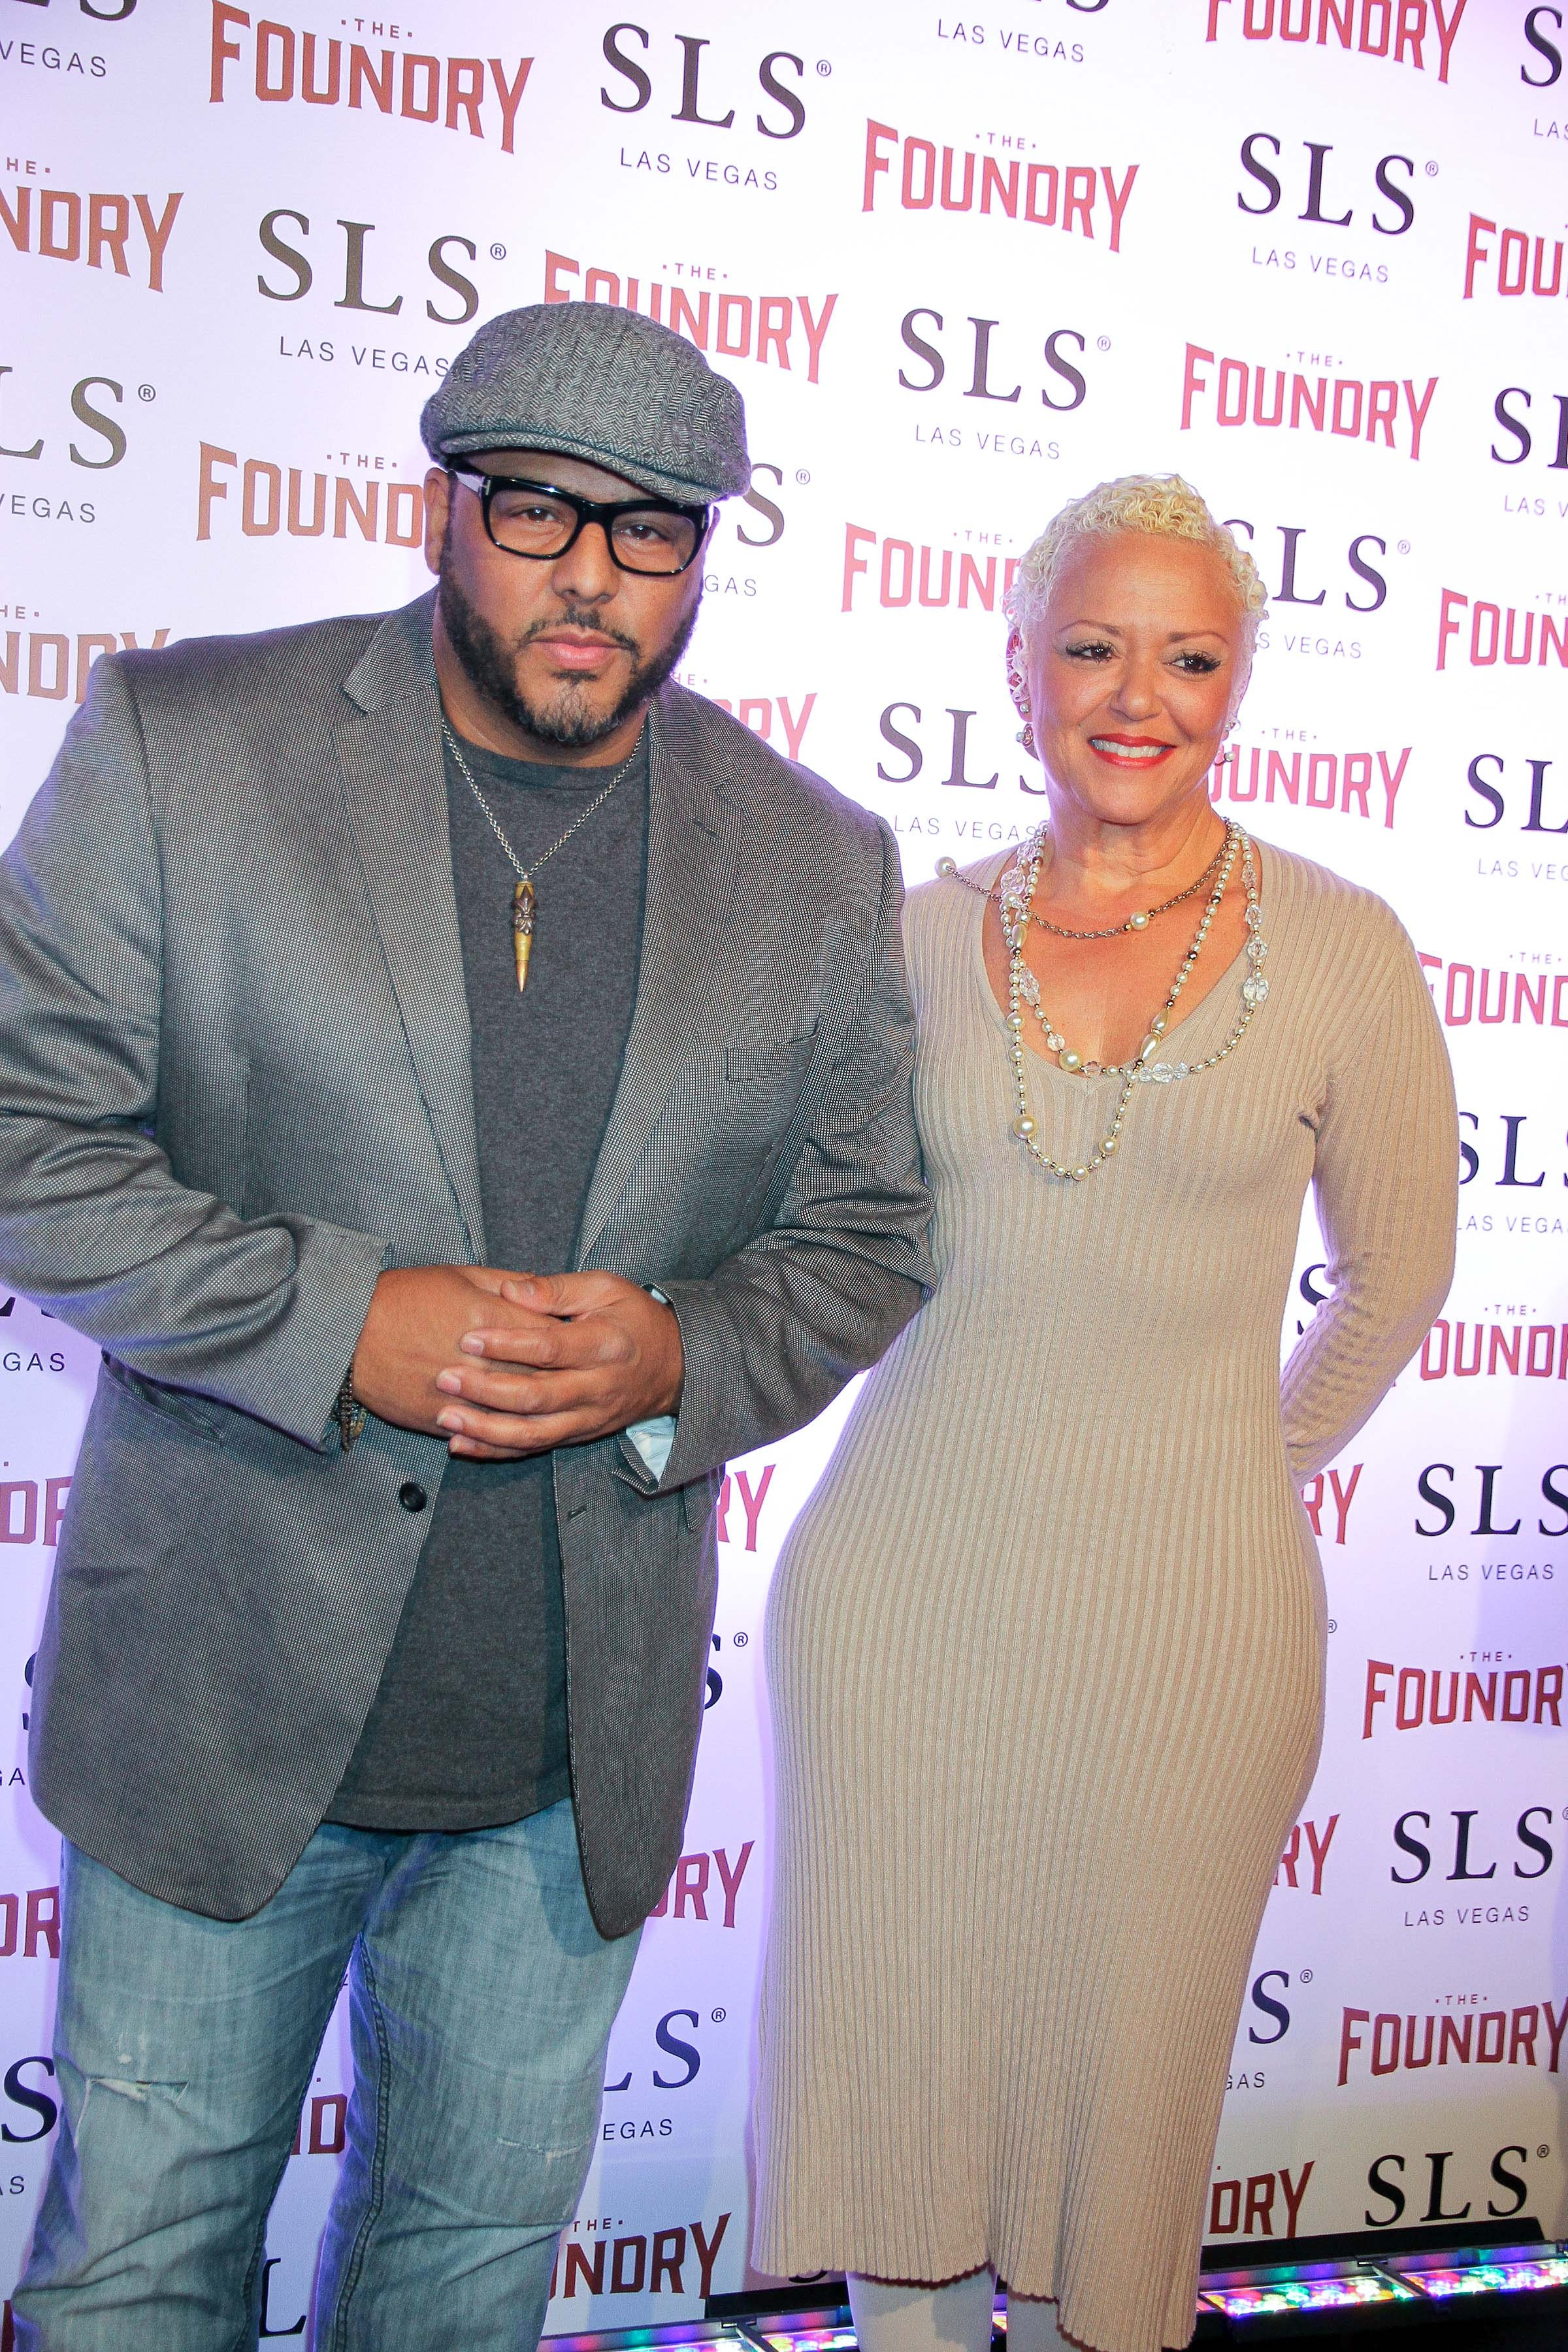 01/06/2017 - Al B. Sure!, Charli Baltimore - Dana Carvey and Jon Lovitz Kick-off Comedy Residency at the Foundry at SLS Las Vegas - The Foundry at SLS Las Vegas Hotel and Casino - Las Vegas, NV, USA - Keywords: R&B recording artist and record producer, man, Charli B., American Rapper, woman, Vertical, Portrait, Photography, Photocall, Photo Call, Press Conference, Announcement, Comic, Comedian, Comics, Comedians, Funny Man, Men, Topics, Topix, Bestof, Arts Culture and Entertainment, Attending, Celebrity, Celebrities, Person, People, Nevada Orientation: Portrait Face Count: 1 - False - Photo Credit: PRN / PRPhotos.com - Contact (1-866-551-7827) - Portrait Face Count: 1